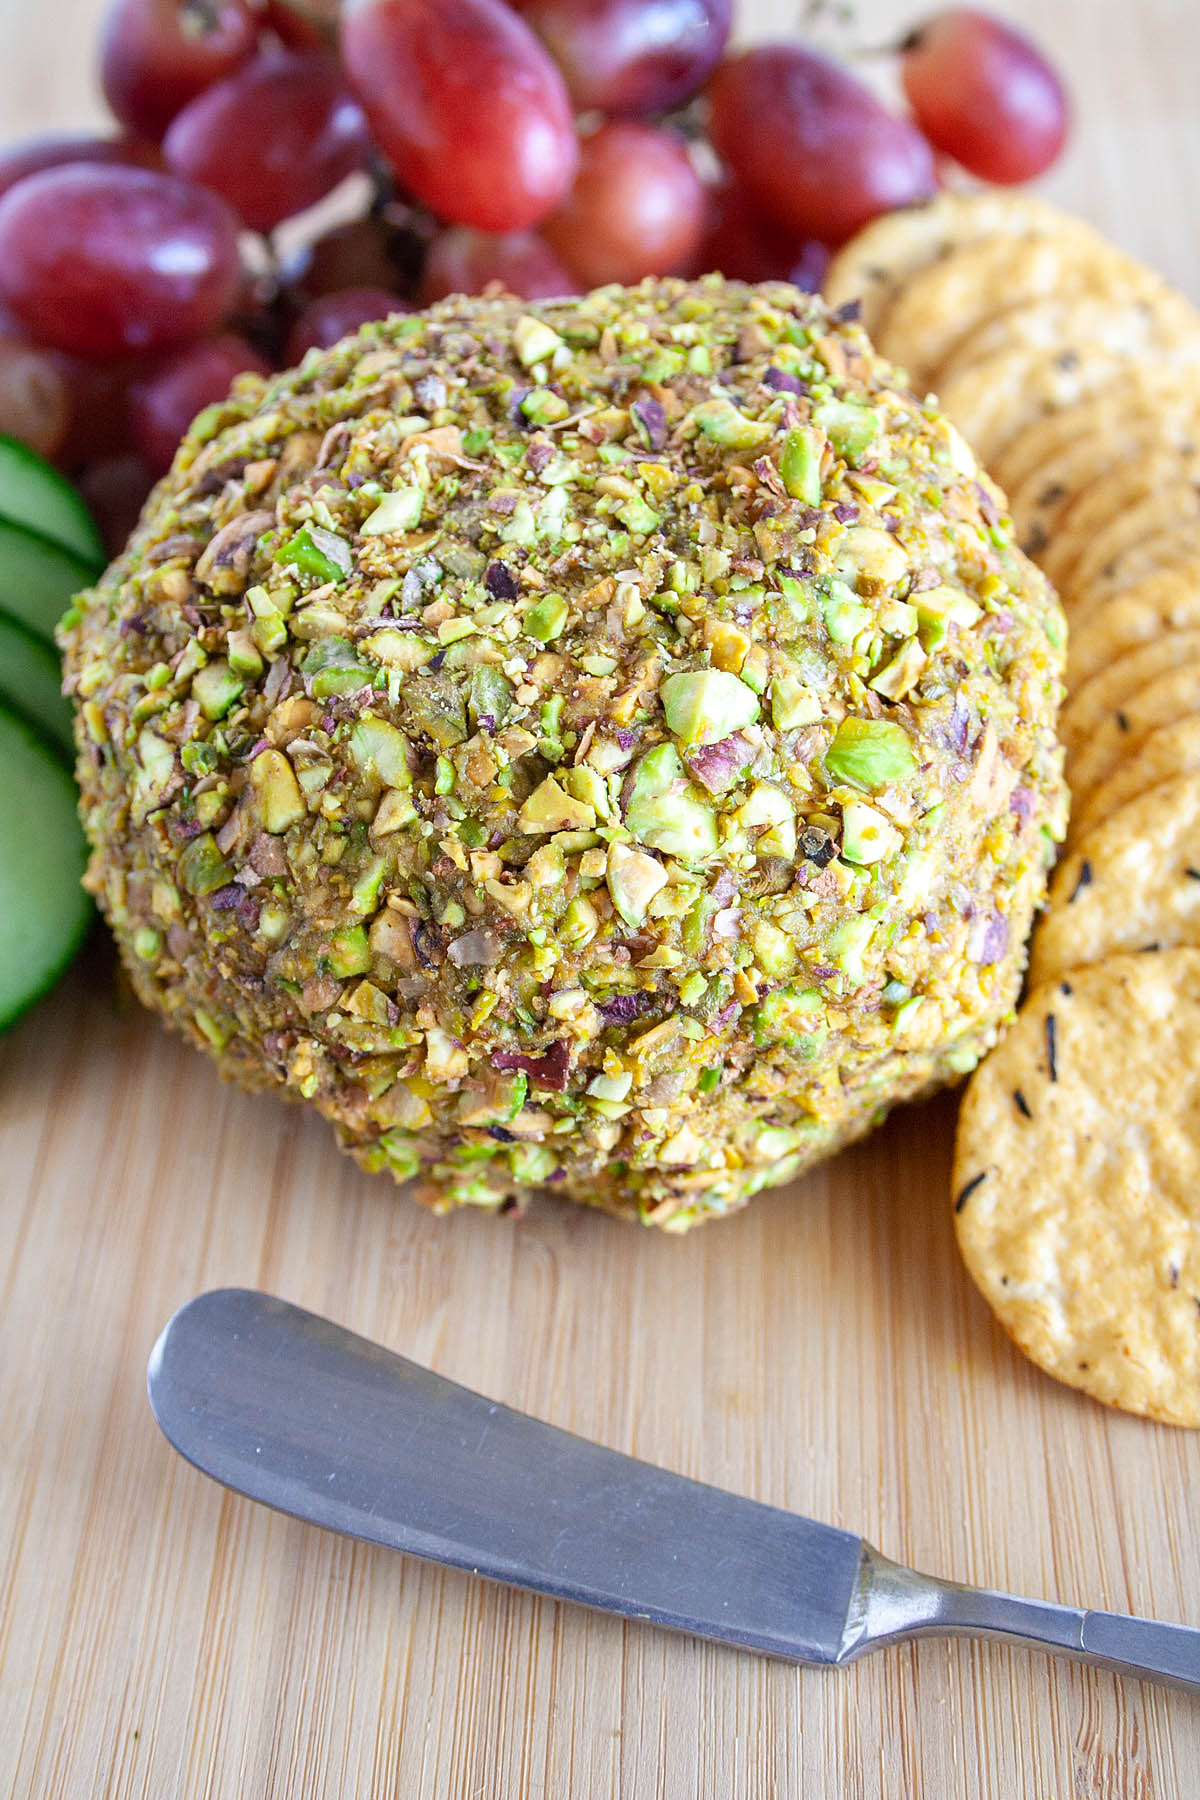 Smoky Vegan Cheese Ball on cutting board with crackers, grapes, and sliced cucumber.